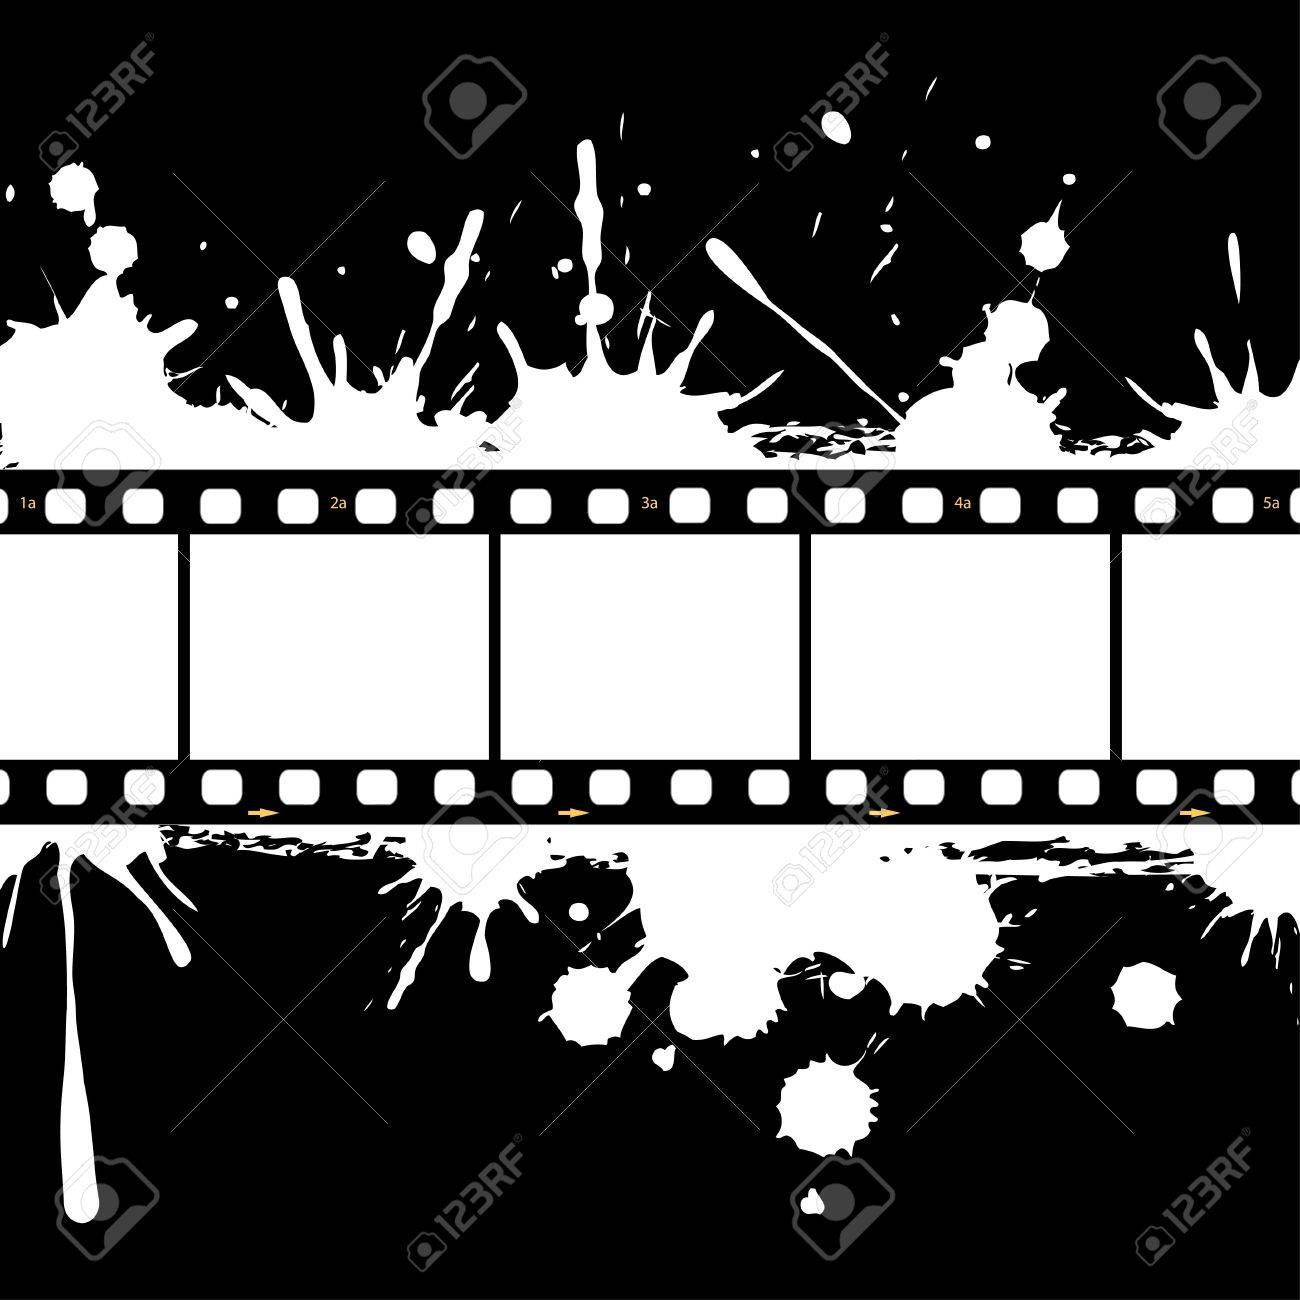 Filmstrip Background Frame Royalty Free Cliparts, Vectors, And Stock ...